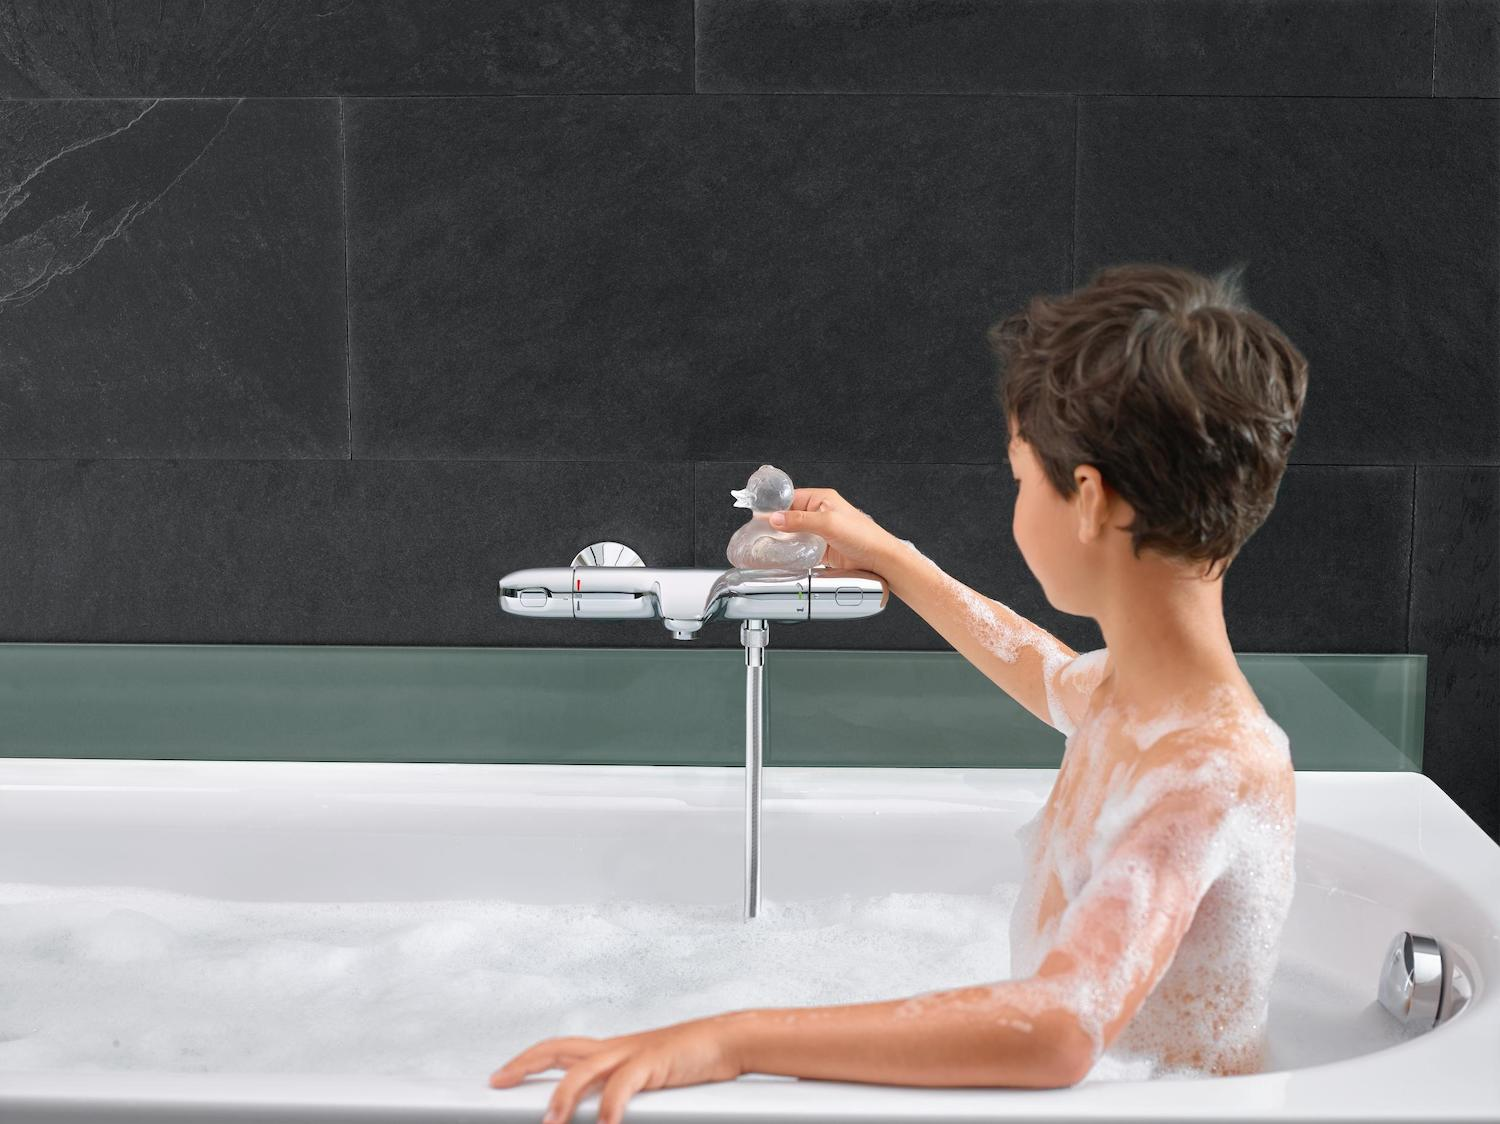 Baterie Grohe cada/dus termostat Grohtherm 1000 New,crom-34155003 imagine 2021 baterii-lux.ro